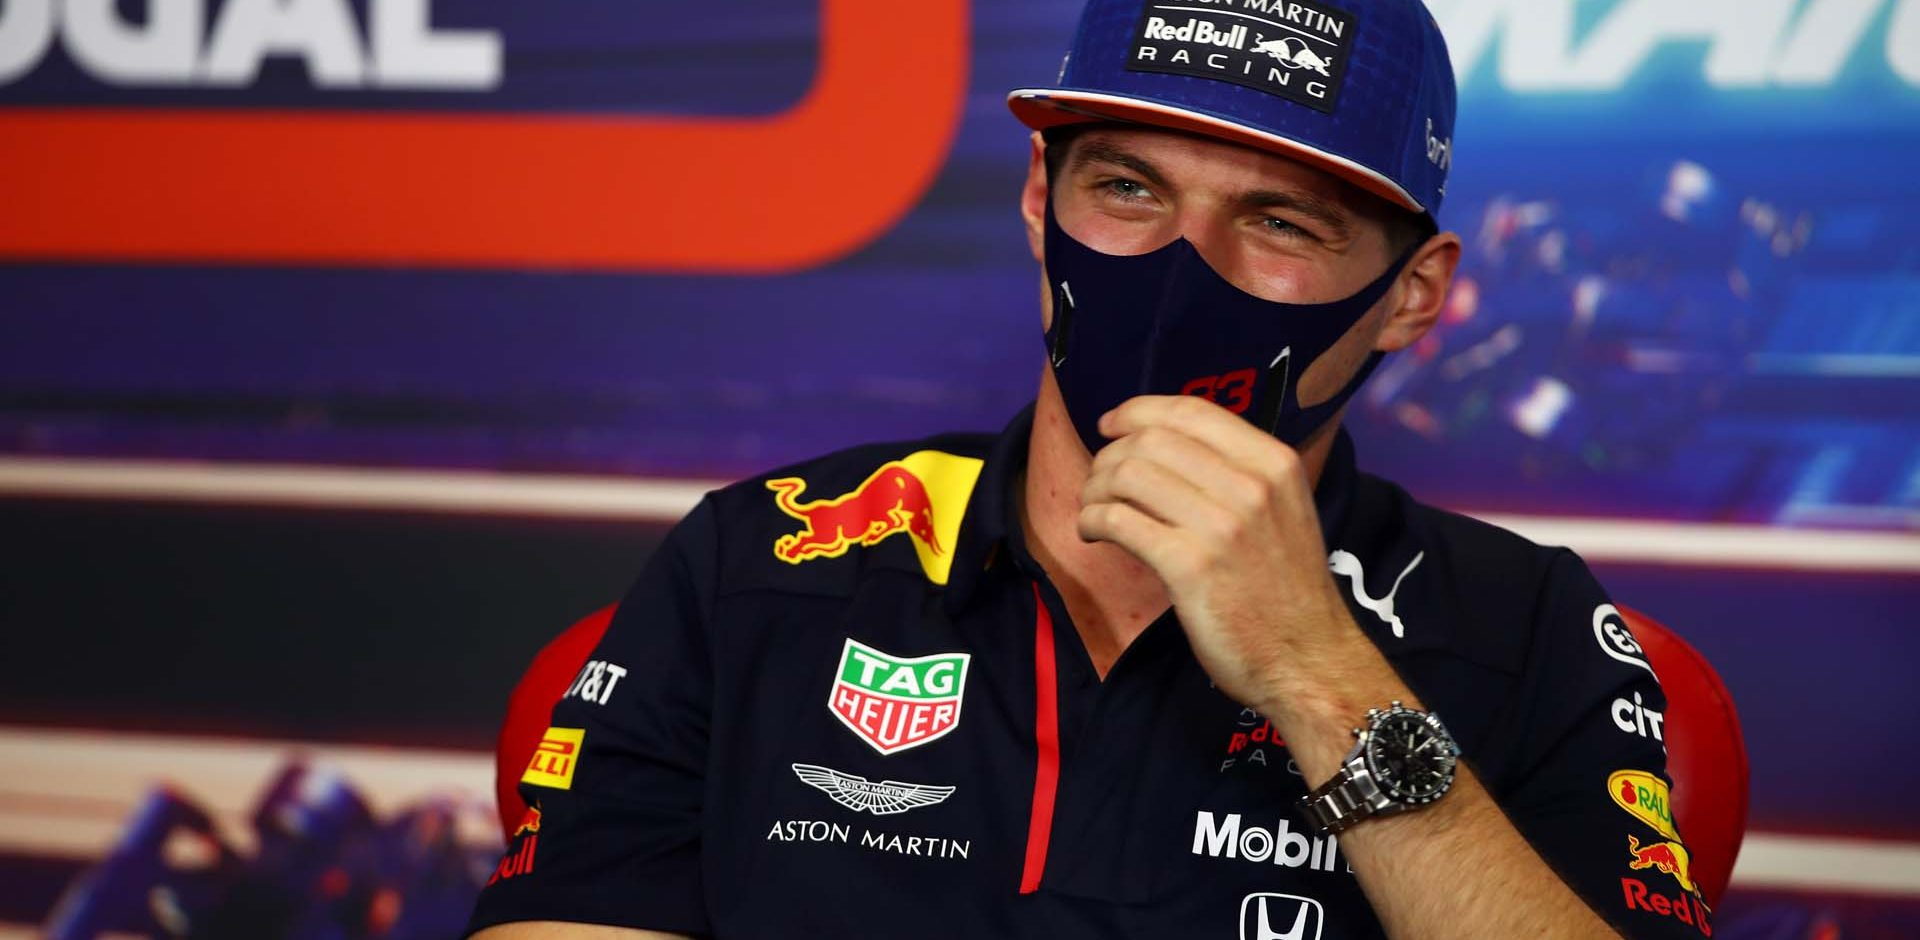 PORTIMAO, PORTUGAL - OCTOBER 22: Max Verstappen of Netherlands and Red Bull Racing talks in the Drivers Press Conference during previews ahead of the F1 Grand Prix of Portugal at Autodromo Internacional do Algarve on October 22, 2020 in Portimao, Portugal. (Photo by Joe Portlock/Getty Images)